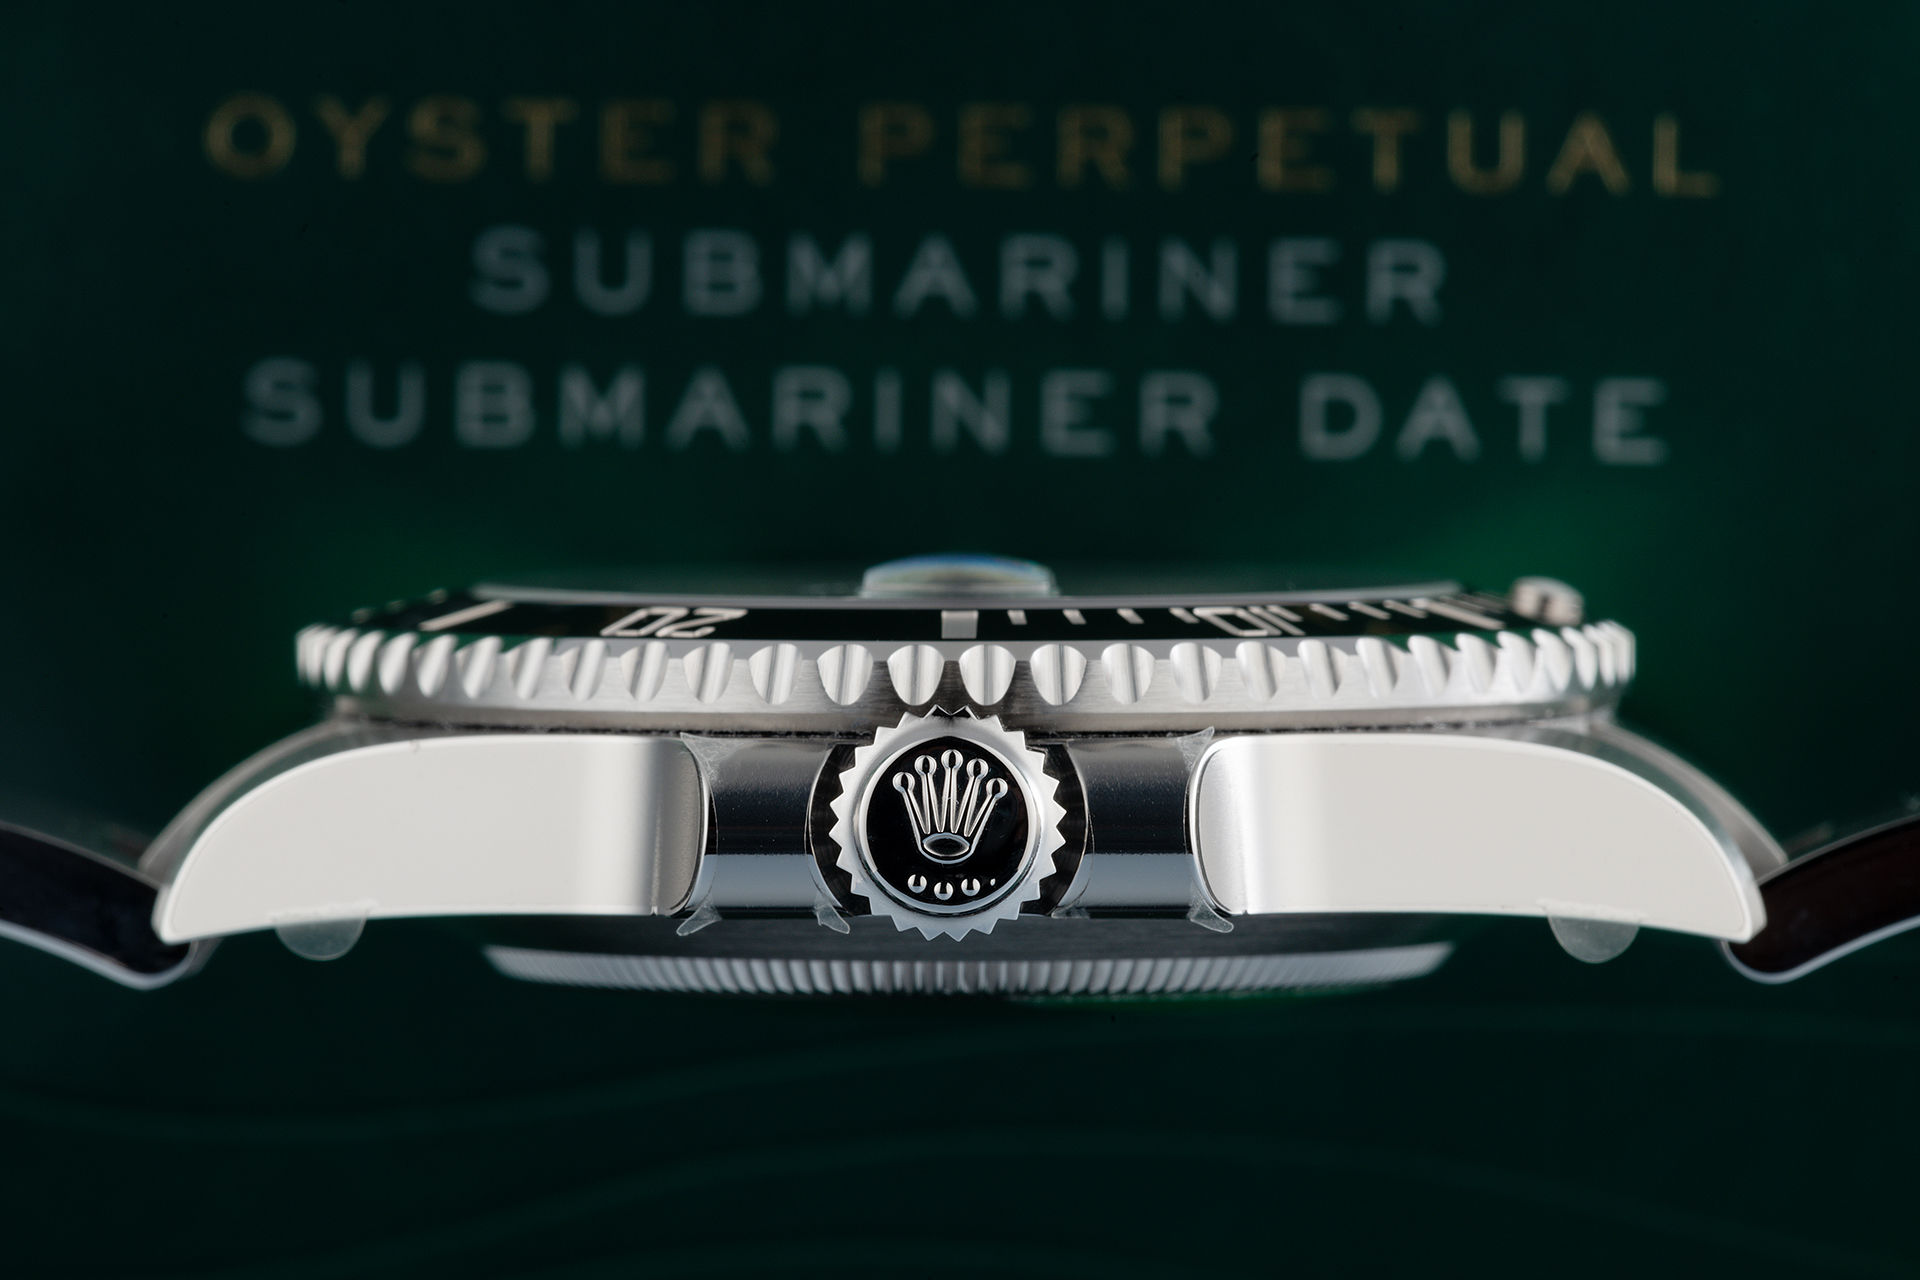 ref 116610LN | Full Set '5 Year Warranty' | Rolex Submariner Date